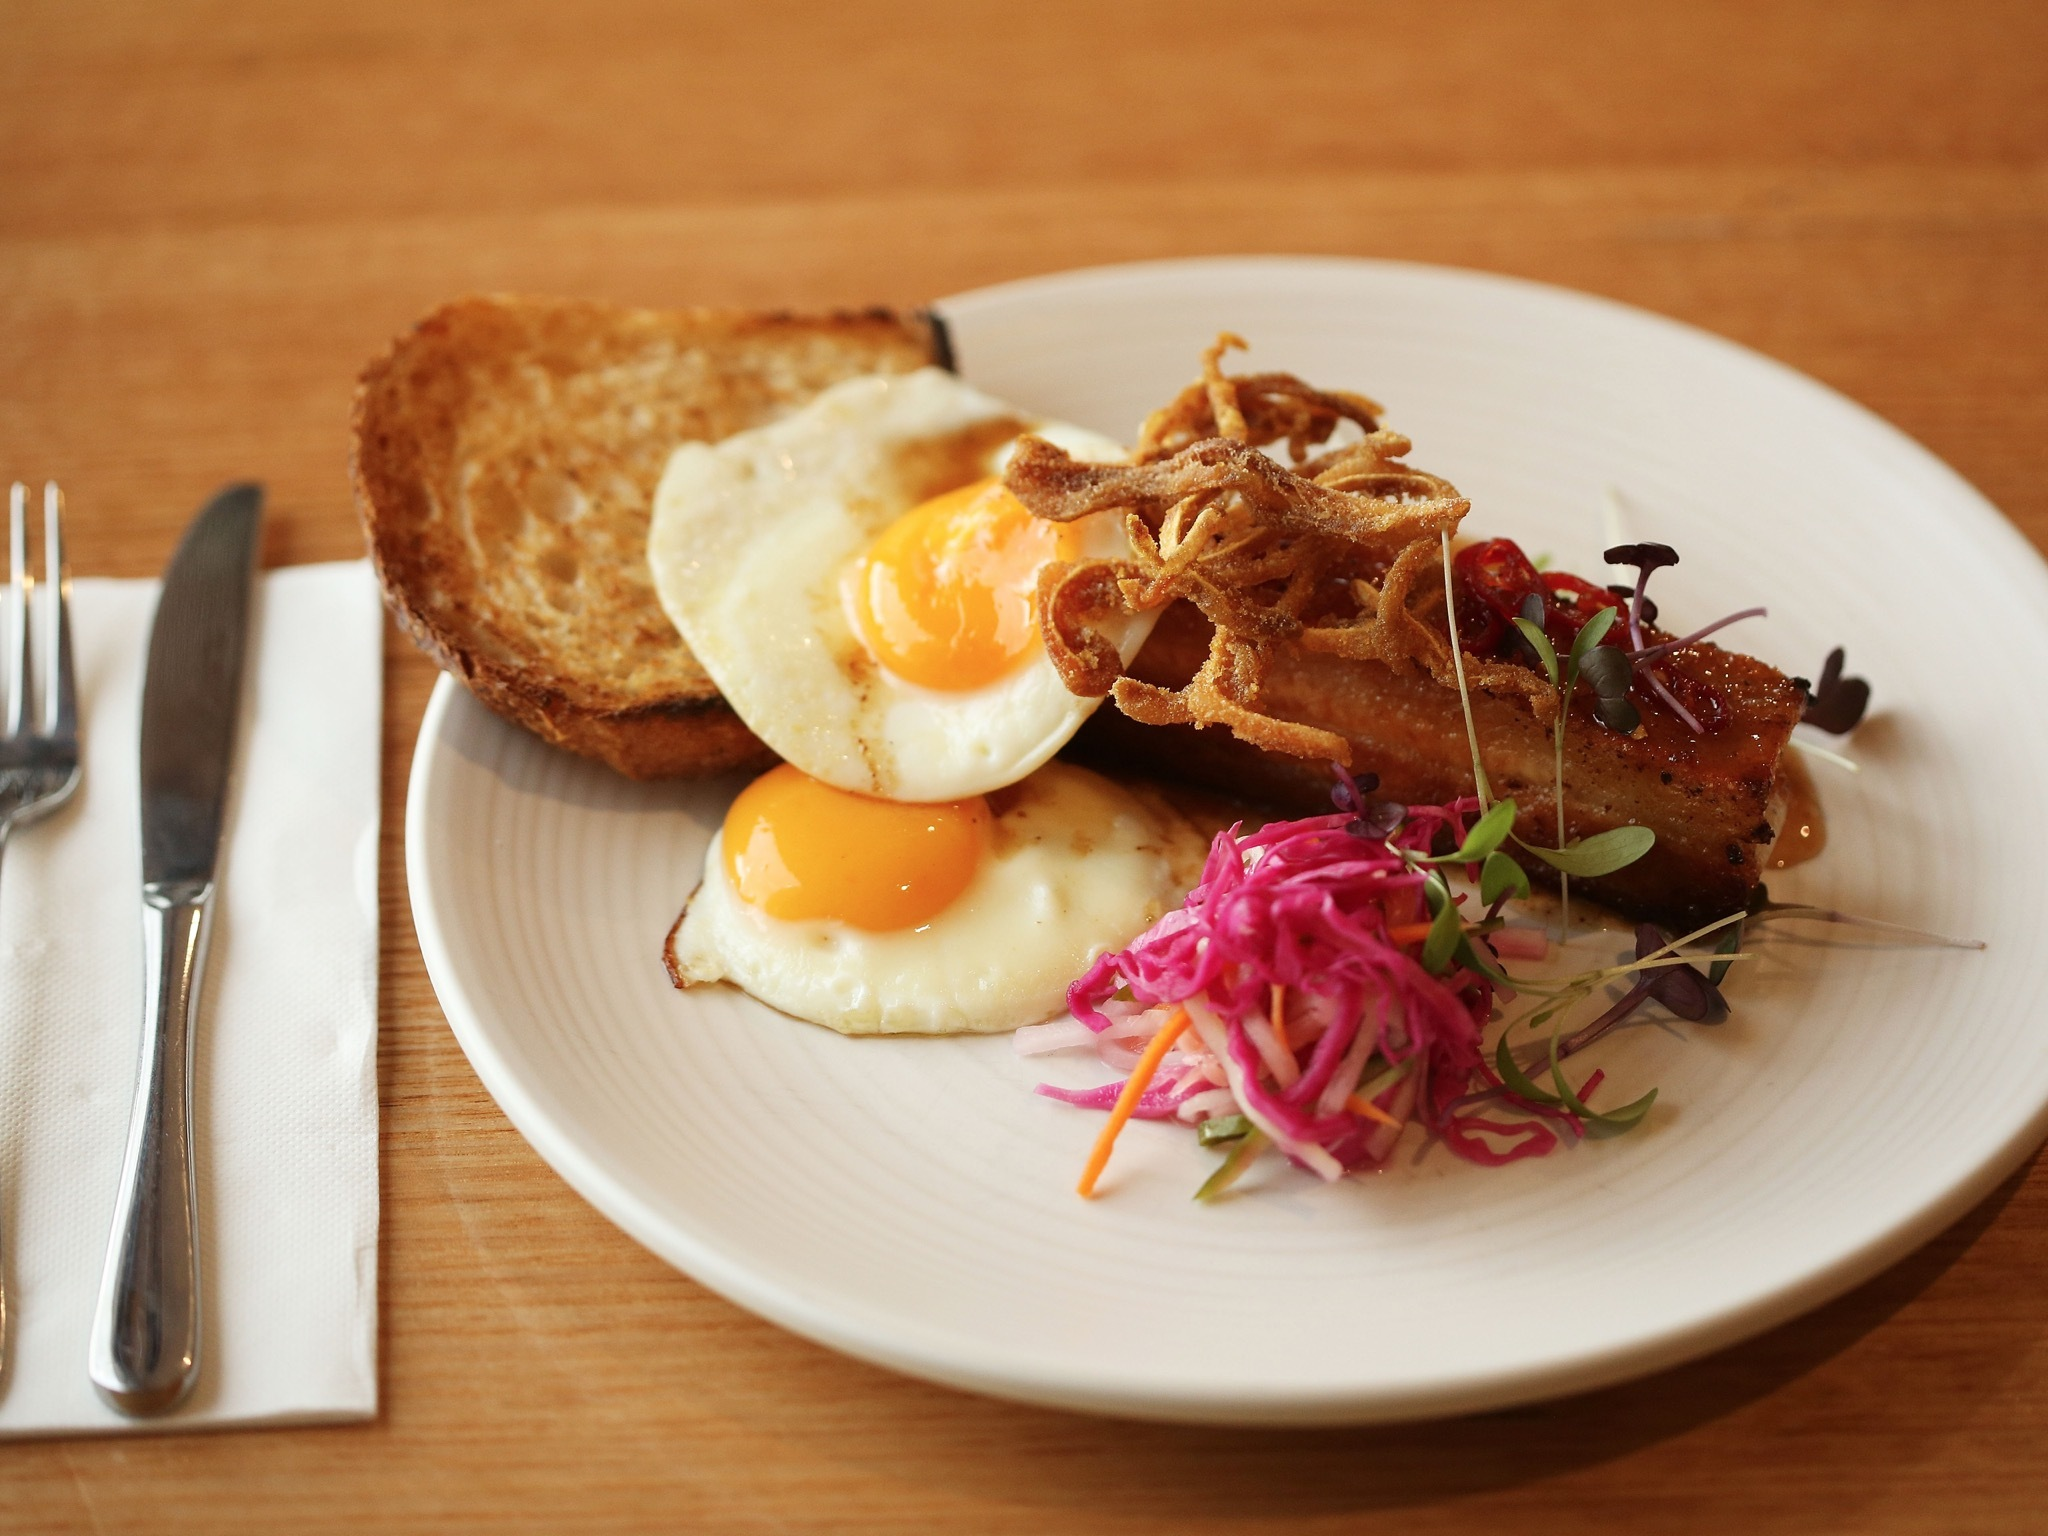 A shot of the braised pork belly, with two fried eggs and a side